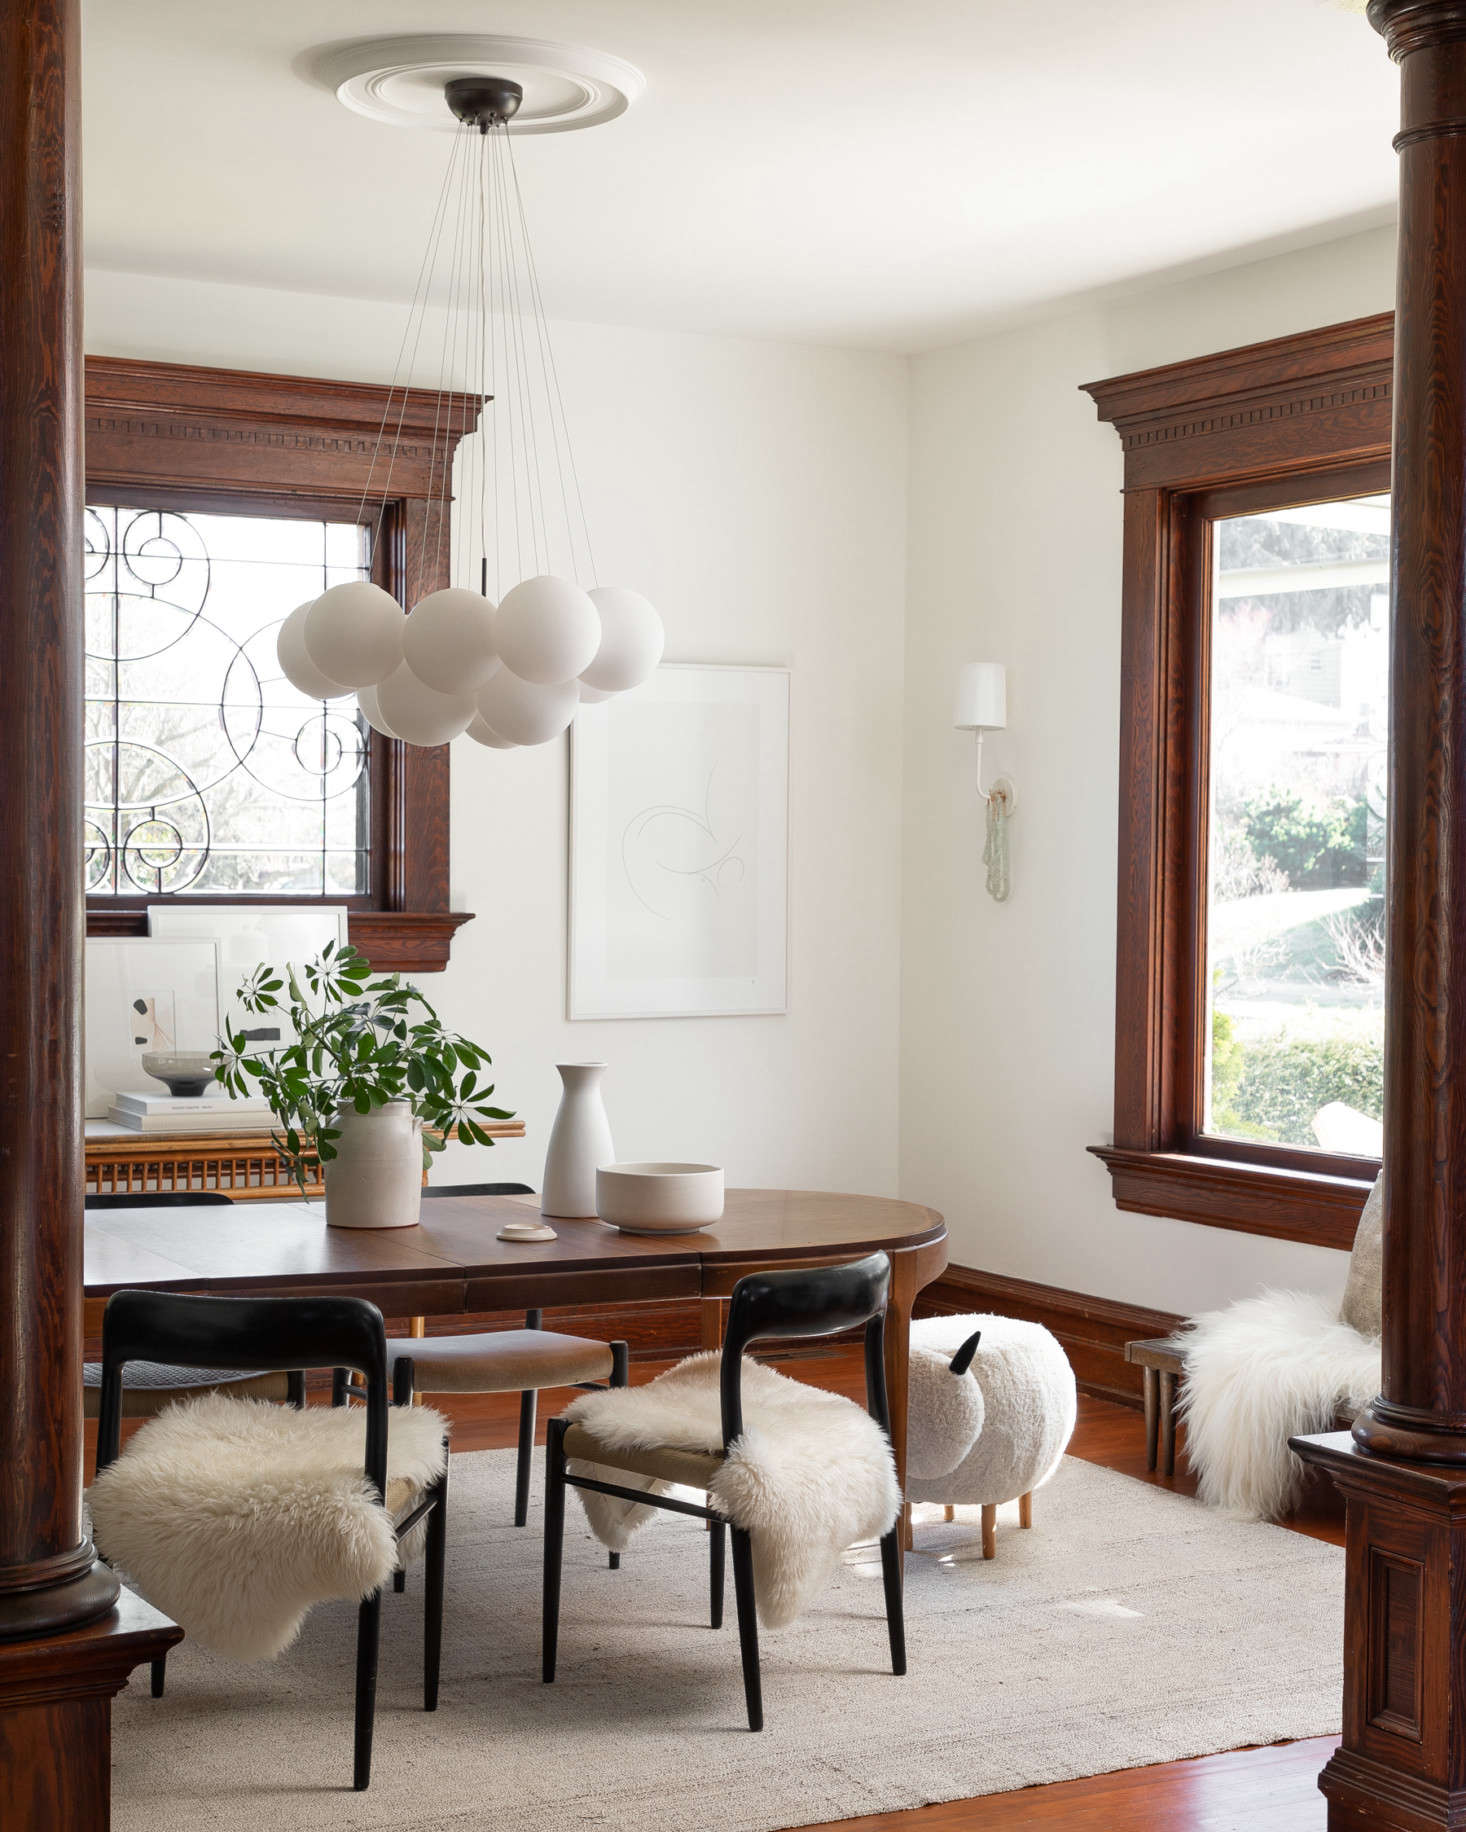 Photograph by Haris Kenjar, courtesy of Lisa Staton Interior Design, from Washington State Four Square: The Client Got Hired by Her Designer Thanks to this Project.